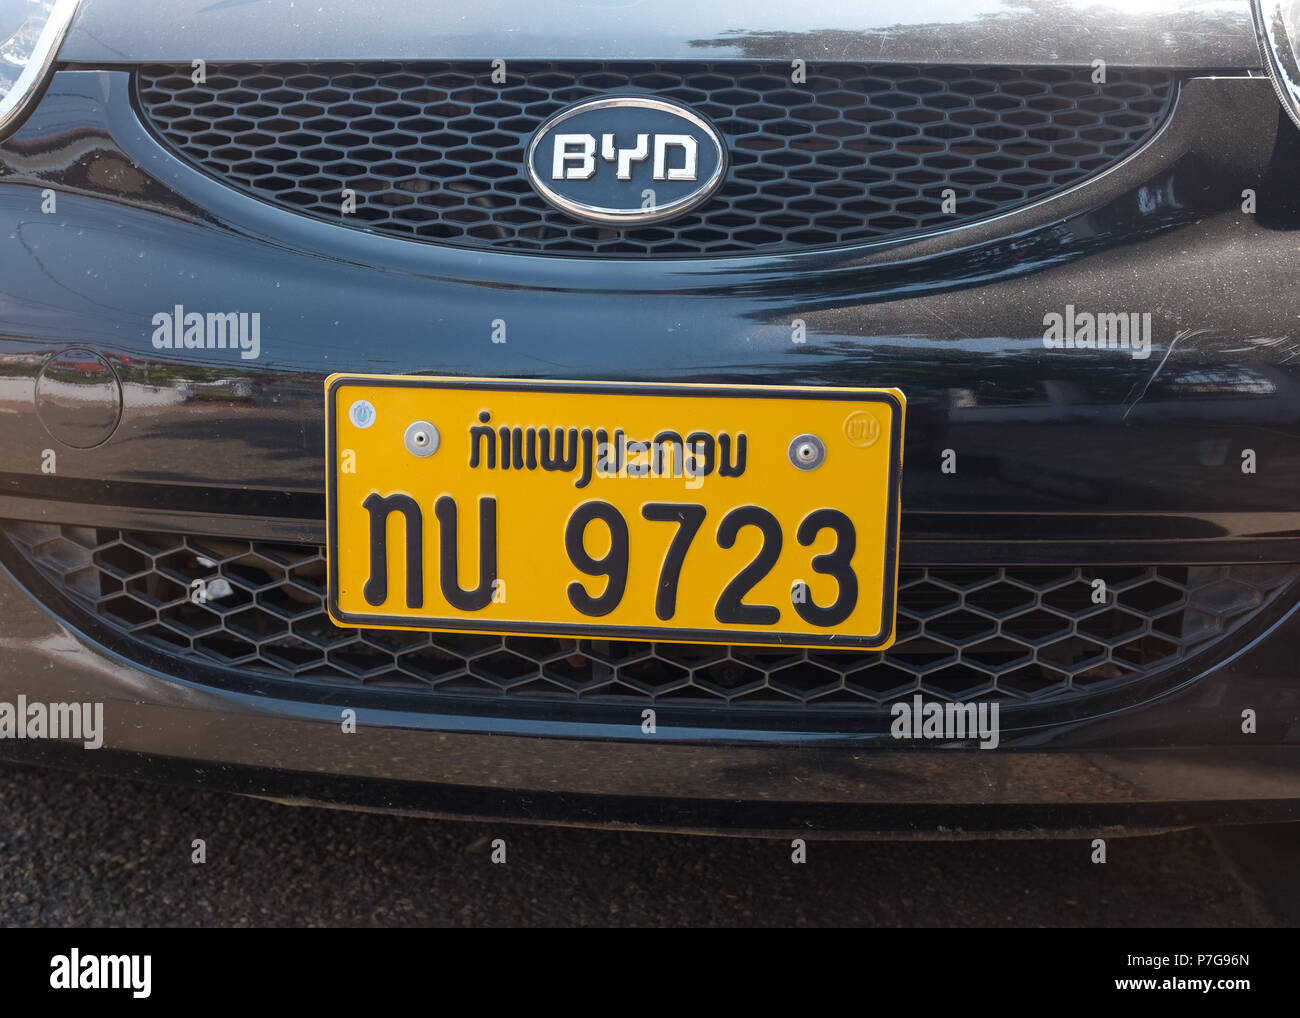 close-up of number plate of BYD(Chinese brand) car in Vientiane, Laos, - Stock Image